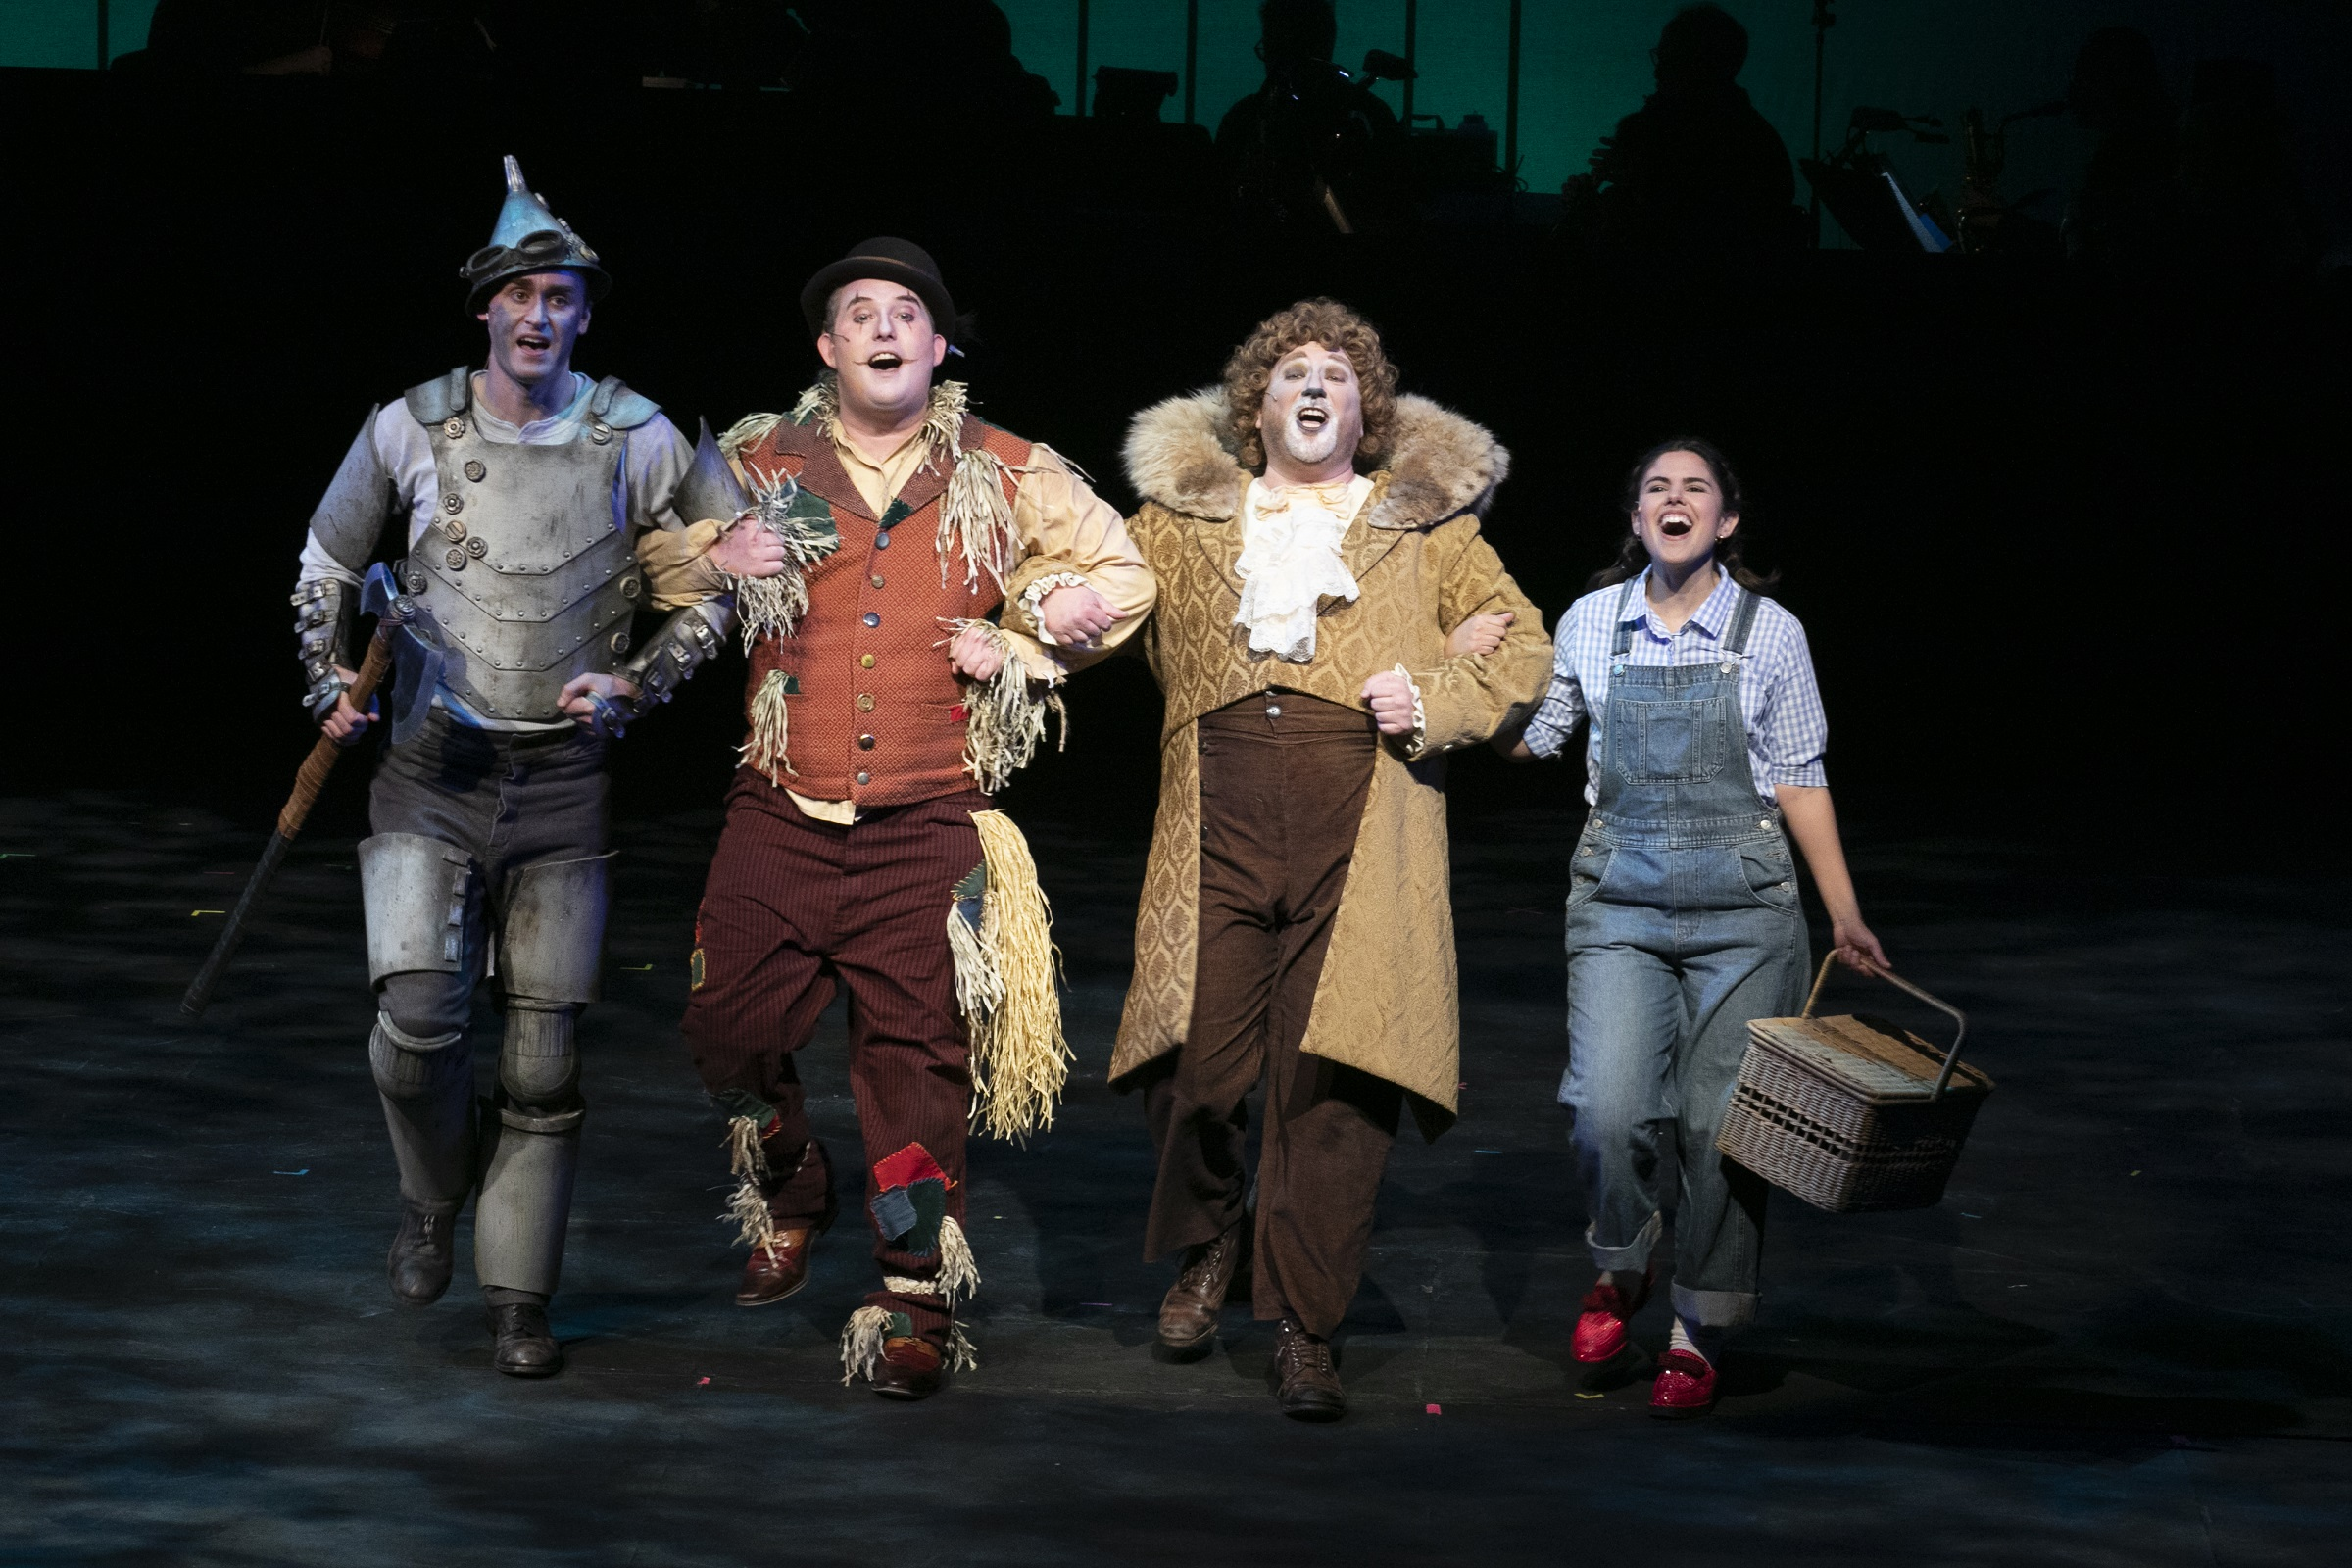 Dorothy follows the Yellow Brick Road with the Tin Man (Eric Wishnie), the Scarecrow (Matthew Reich) and the Cowardly Lion (John Bridges).